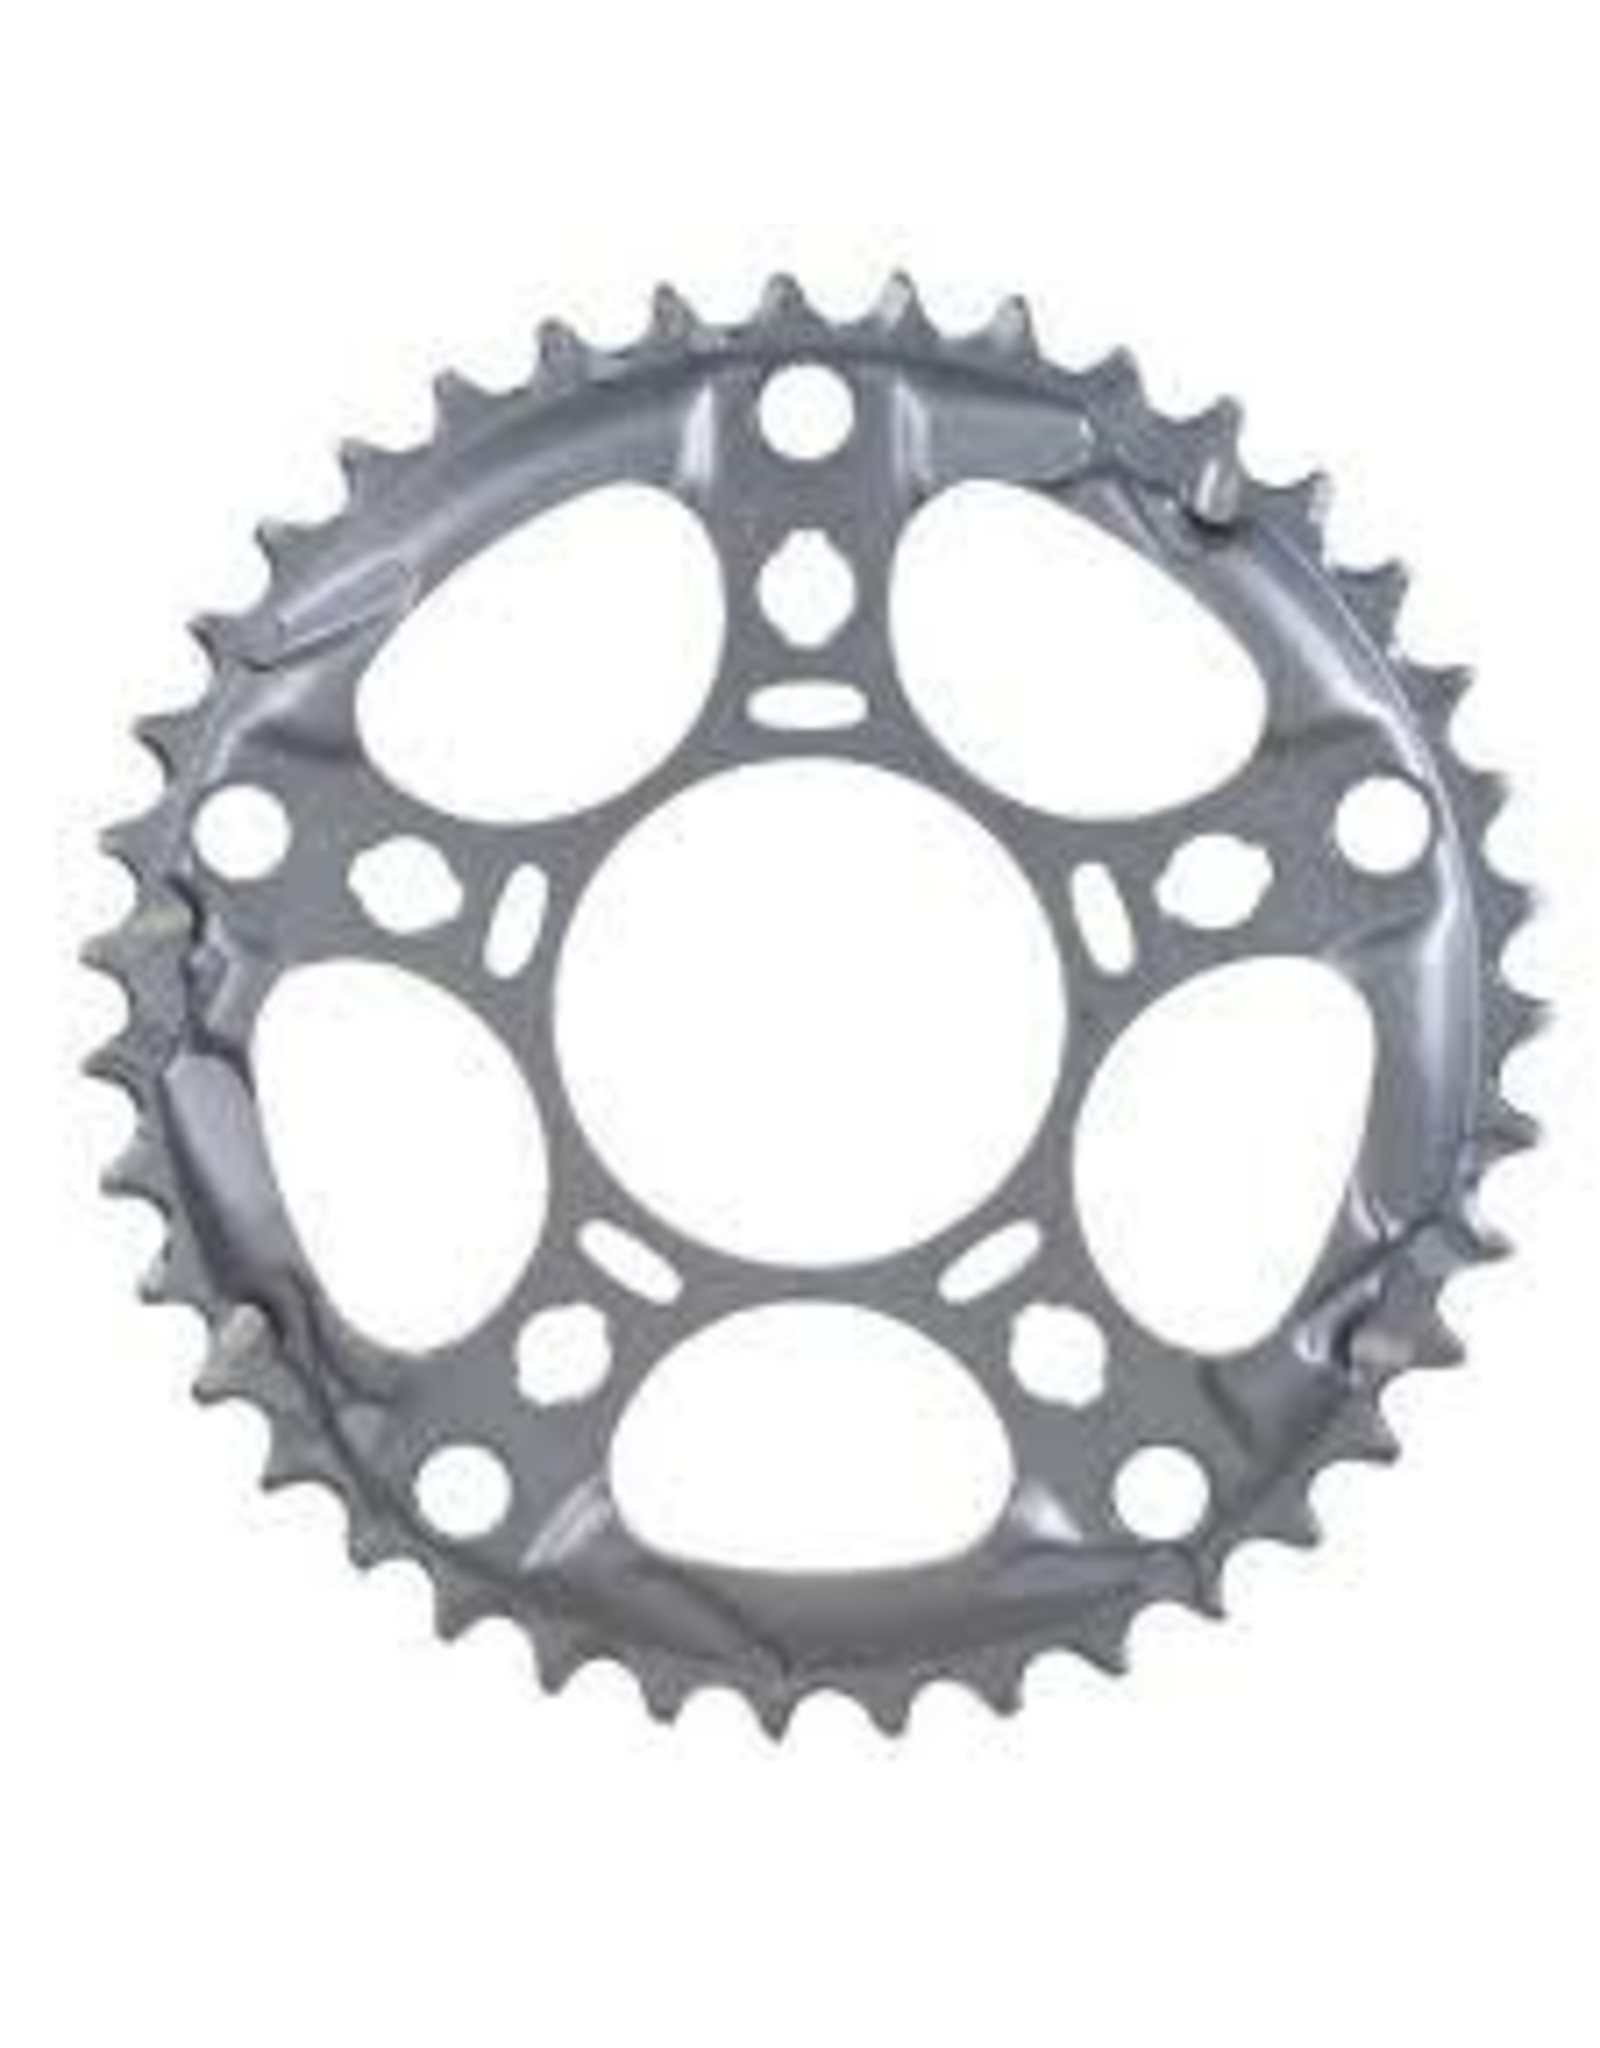 Shimano Chainring Ultegra 6703 39t 130mm 10spd triple middle ring